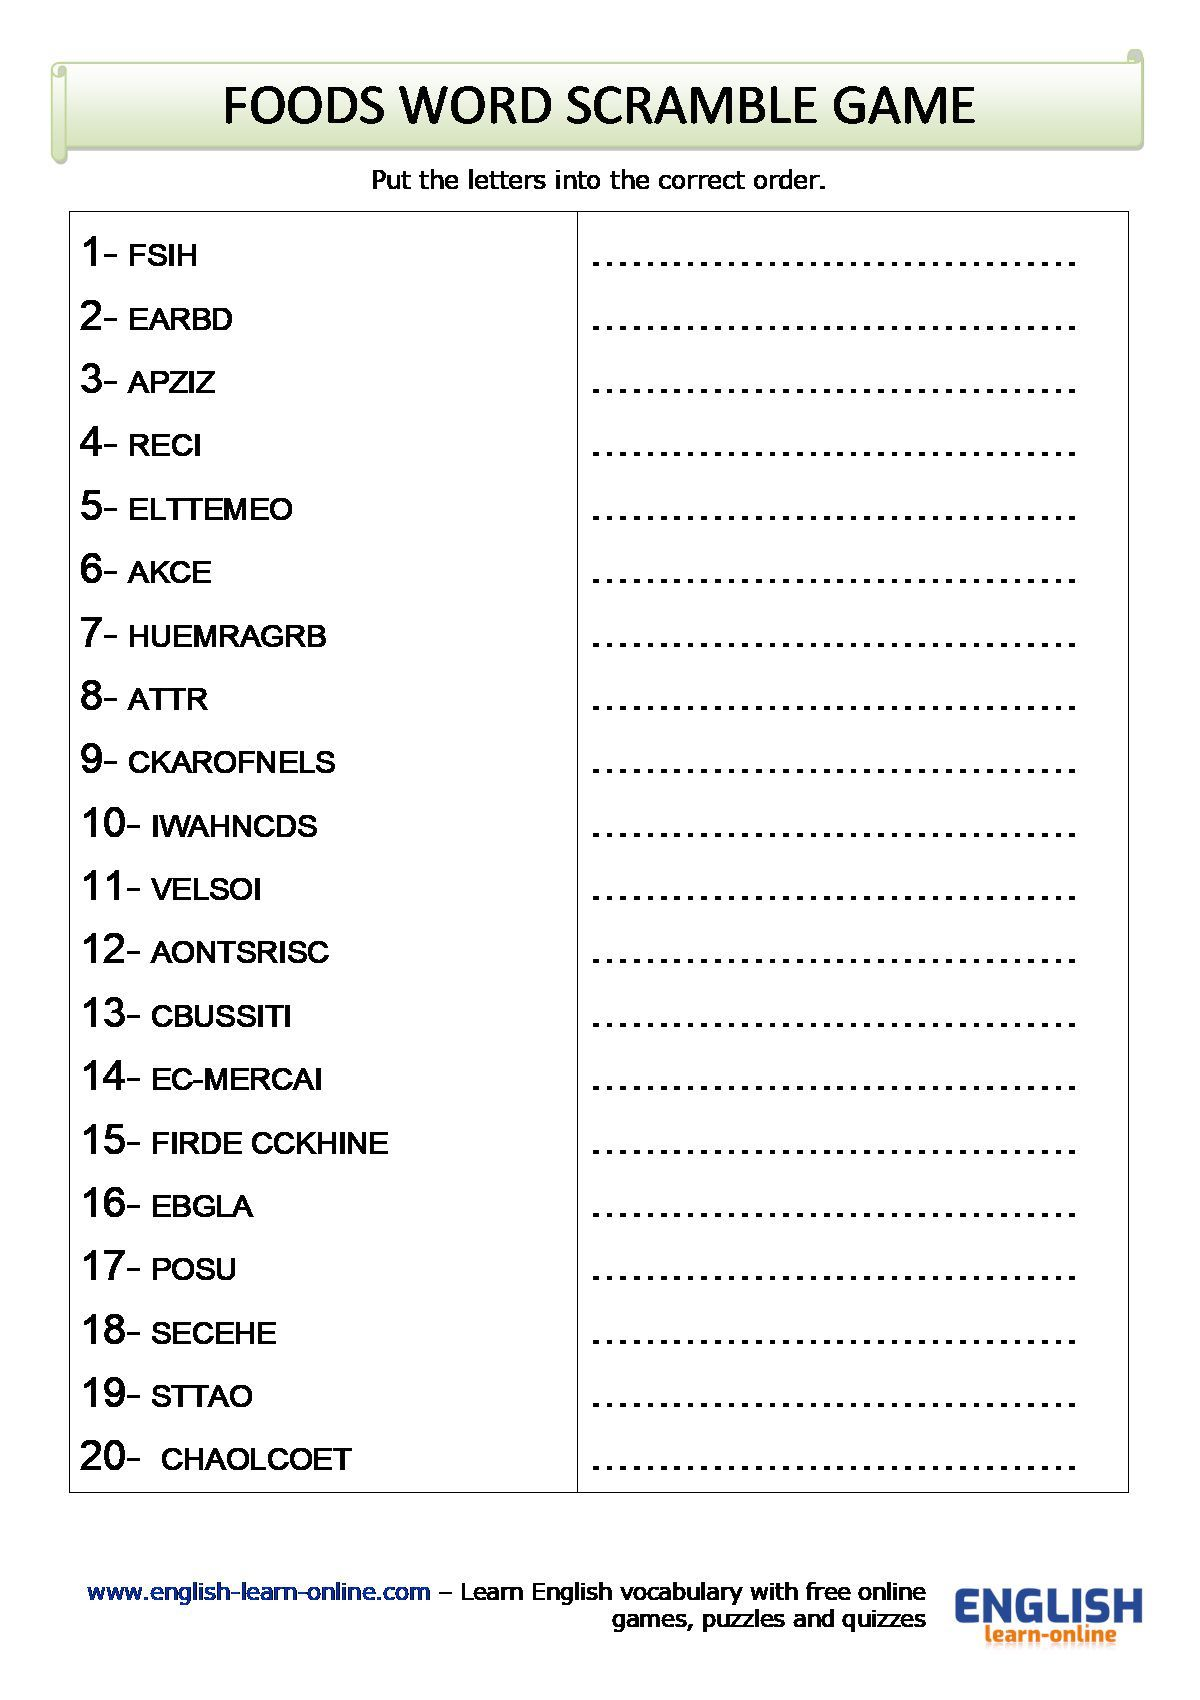 Foods Vocabulary Word Scramble Game Worksheet In